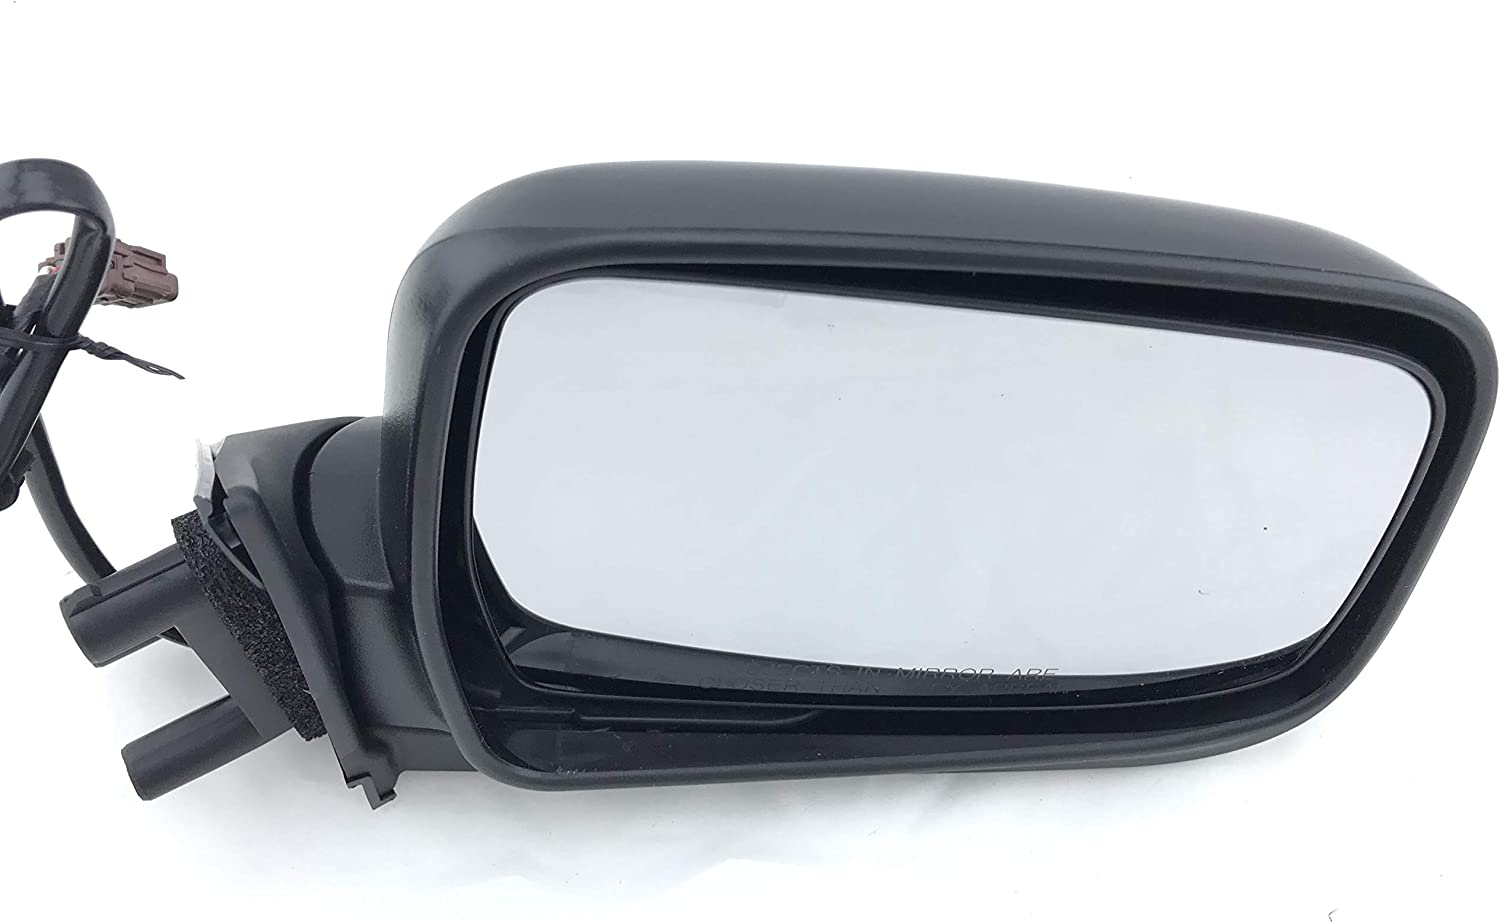 NI1321140 Passenger Side Right Rear View Mirror Replacement for Nissan//Datsun Frontier 98-04 //XTERRA 00-04 Parts Link # OE:963013S500